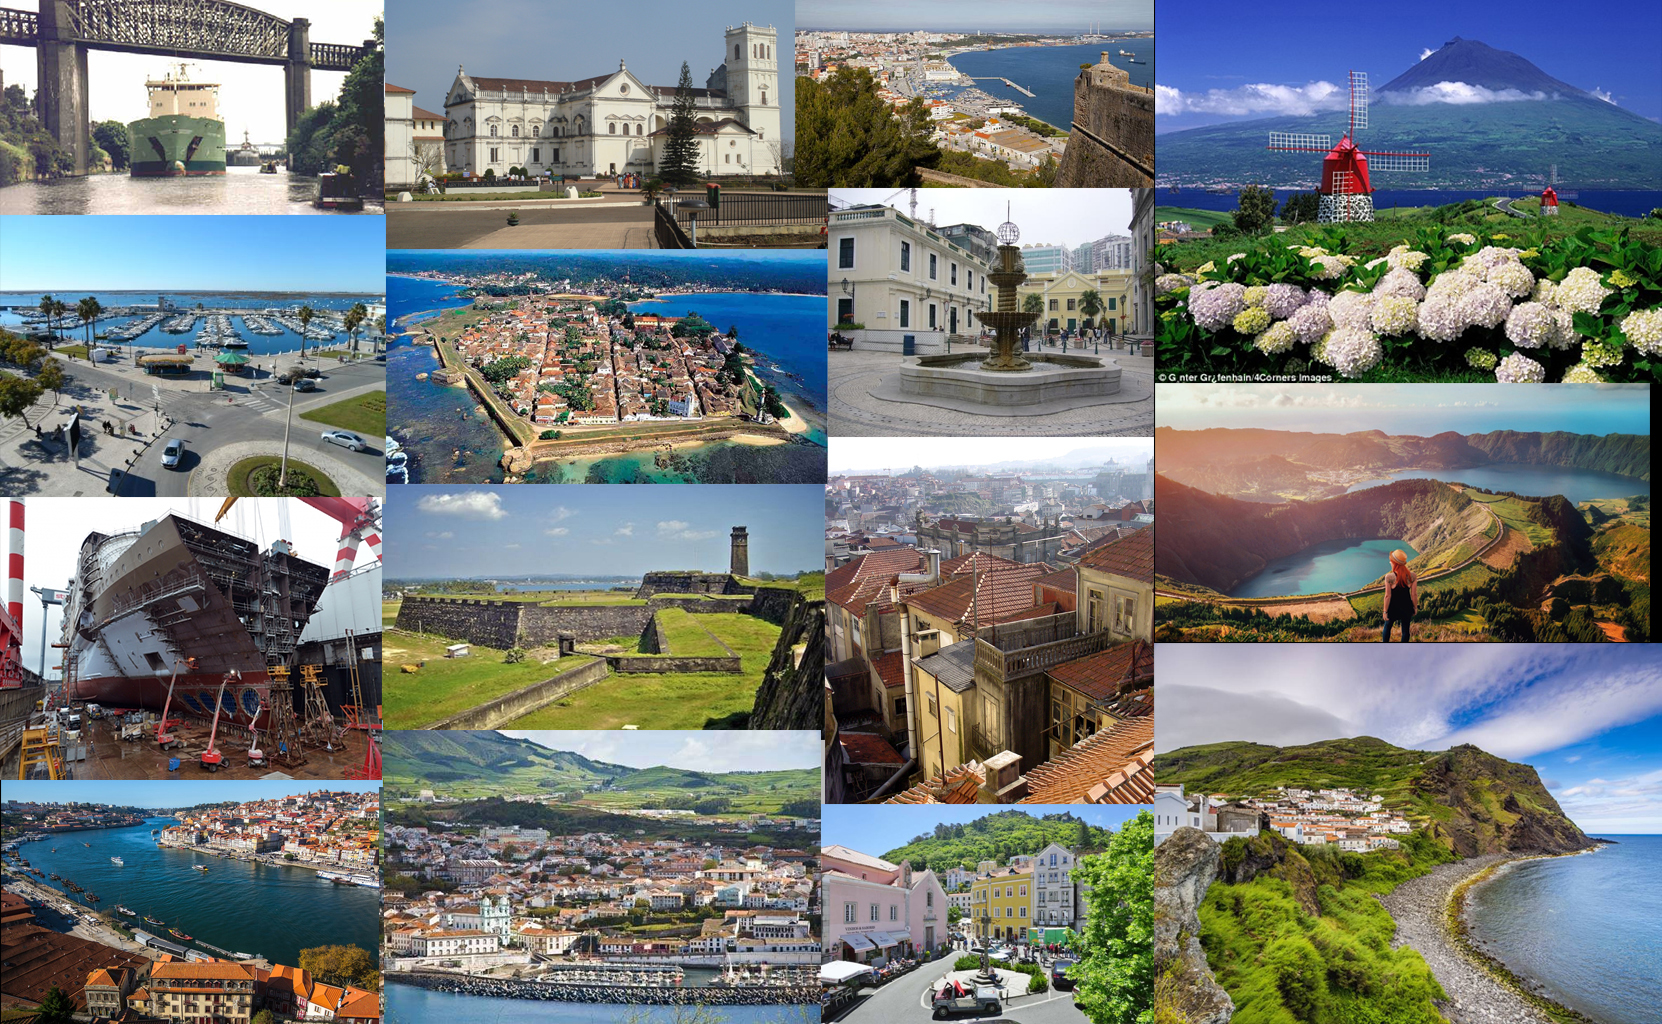 port%20hope%20moodboard%20(AZORES%20ISLANDS)